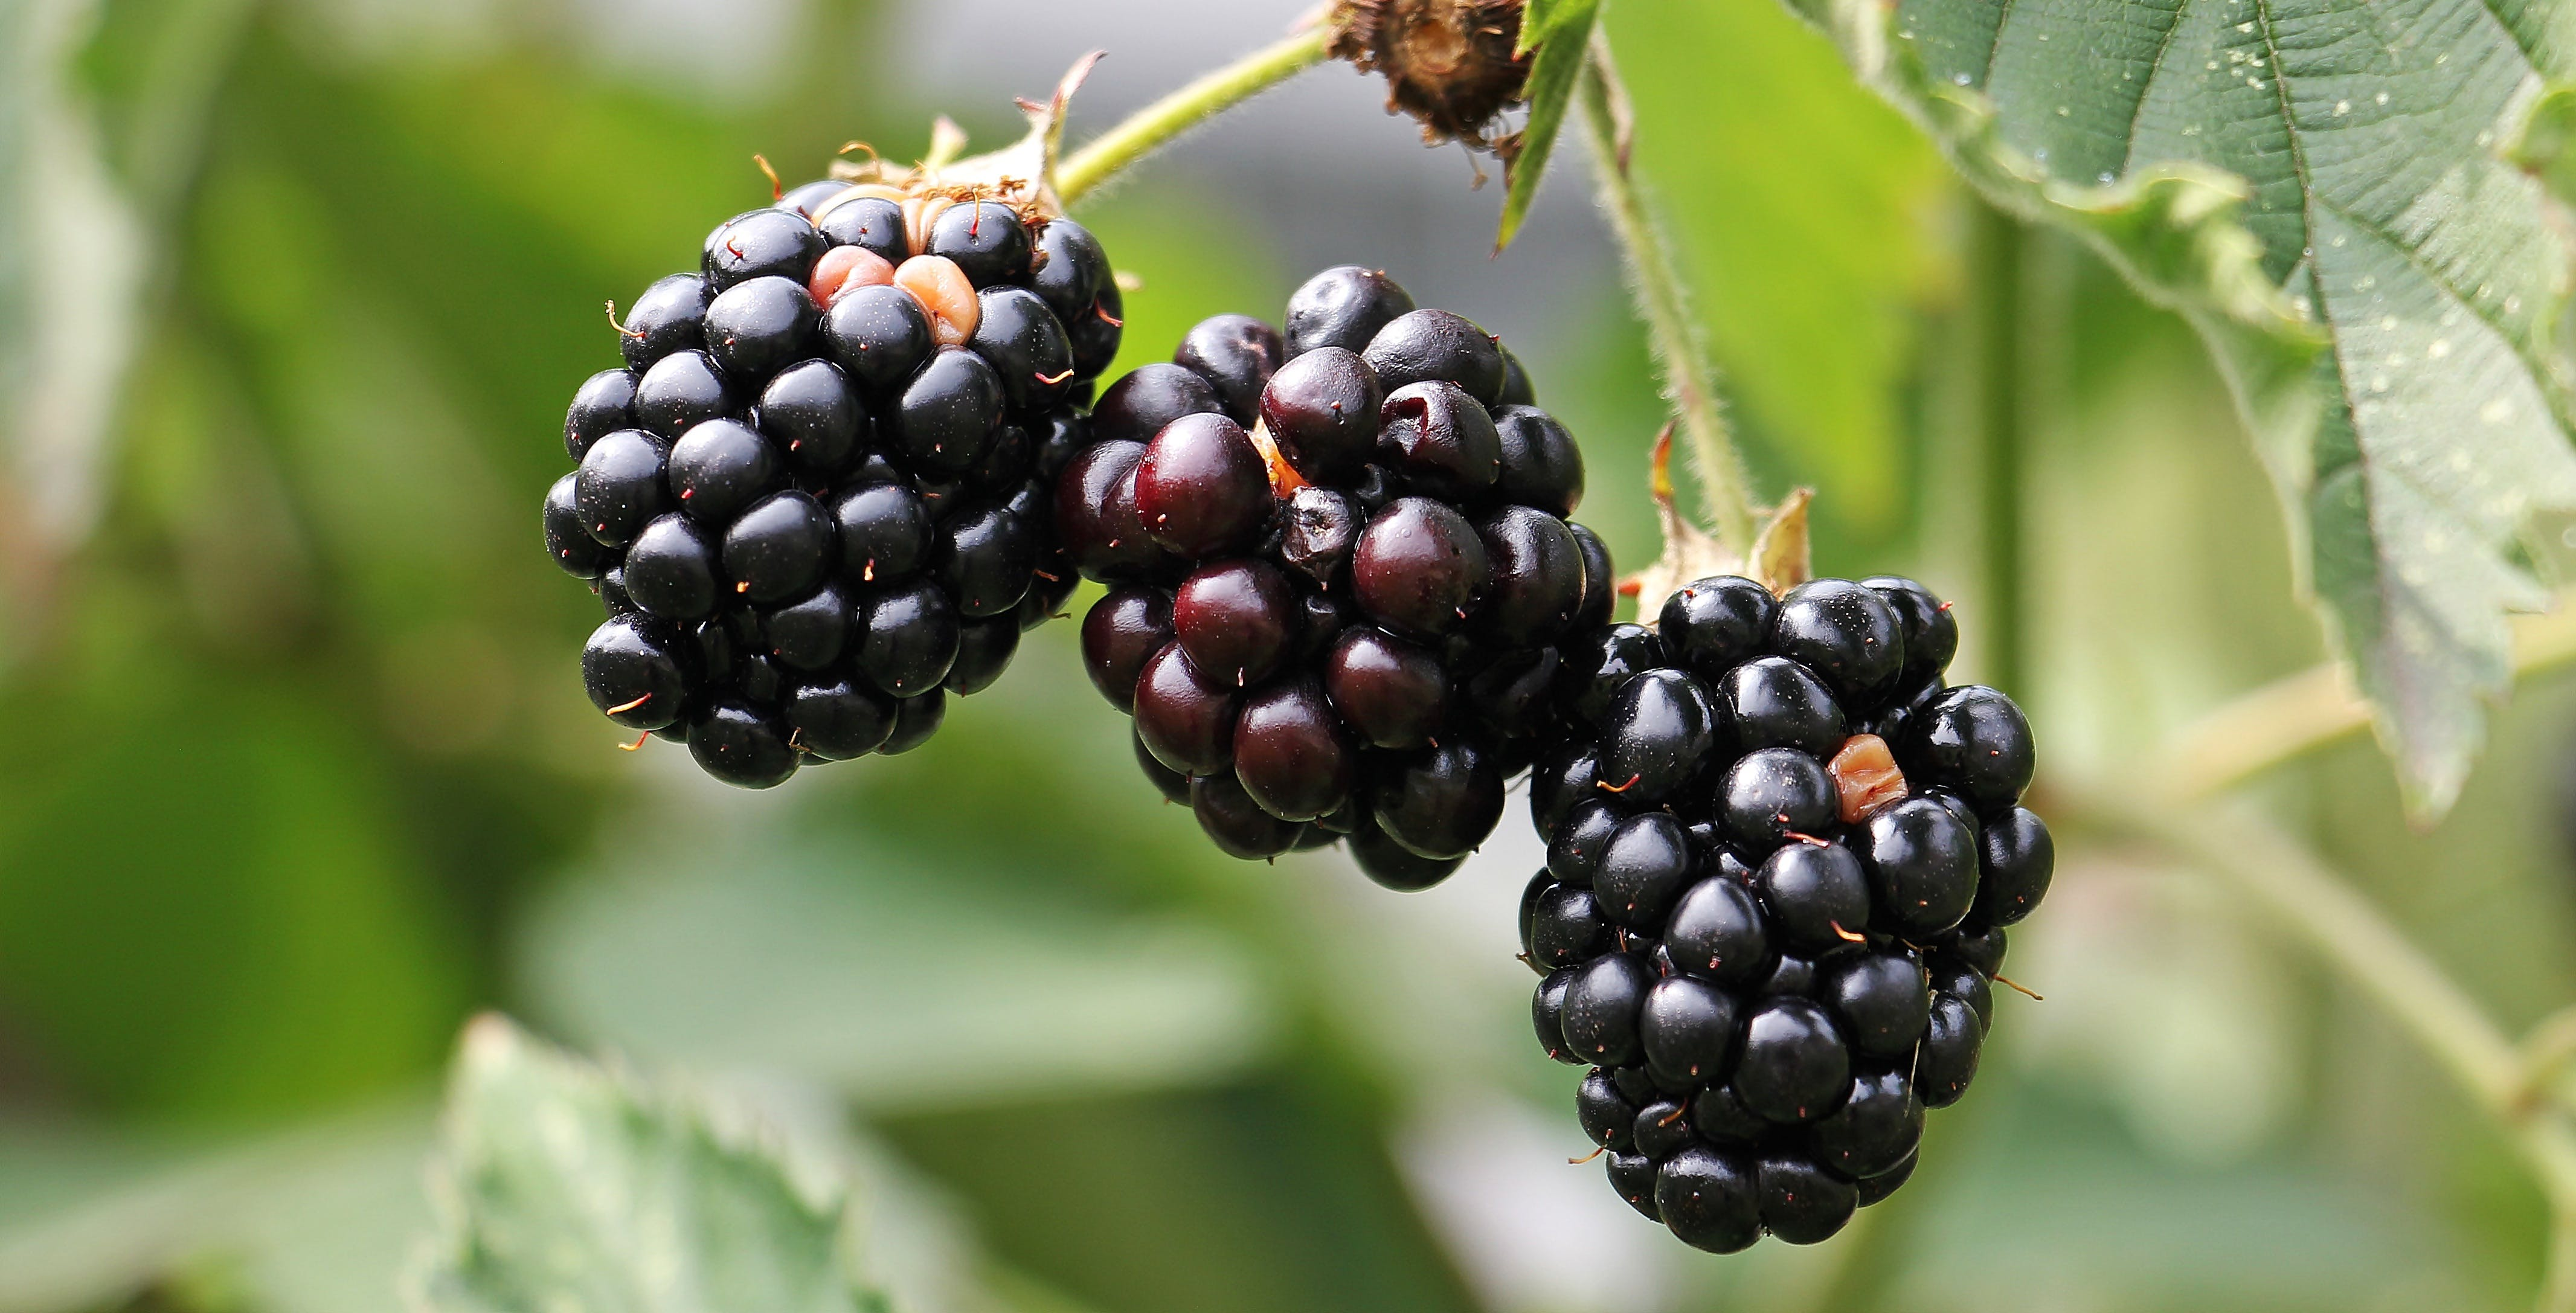 Round Black Fruit